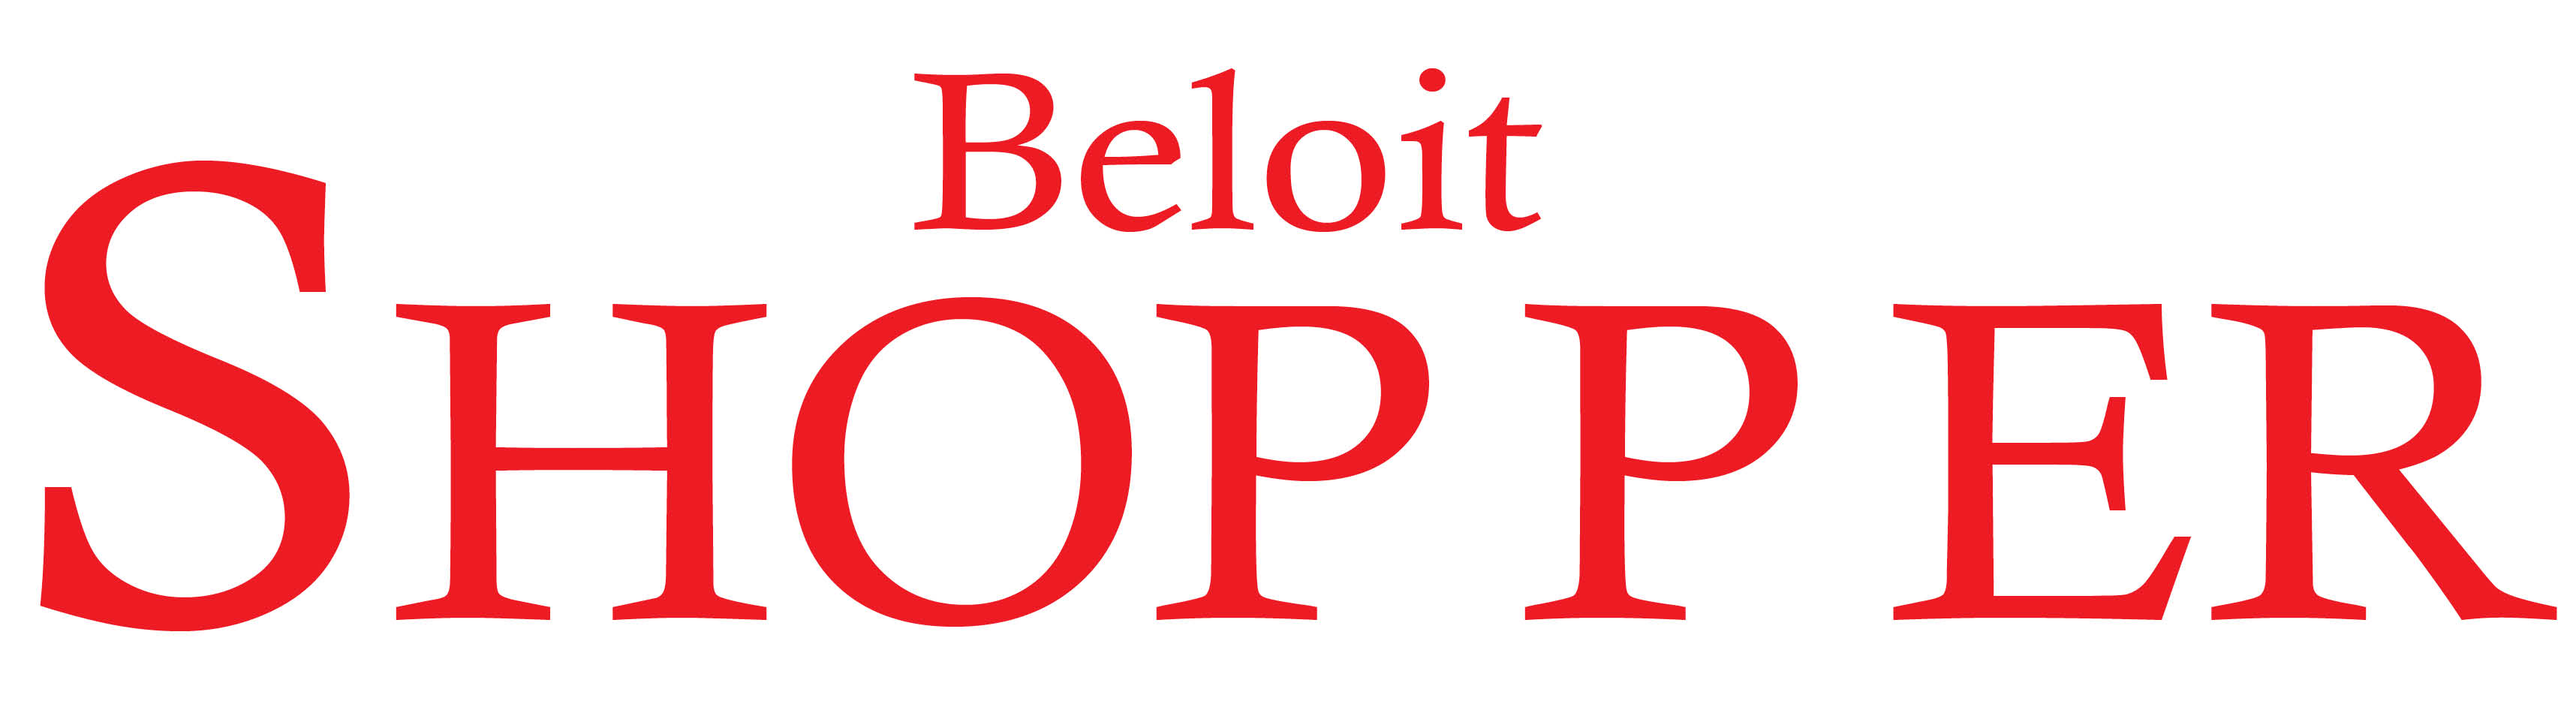 5/18/17 Beloit Shopper